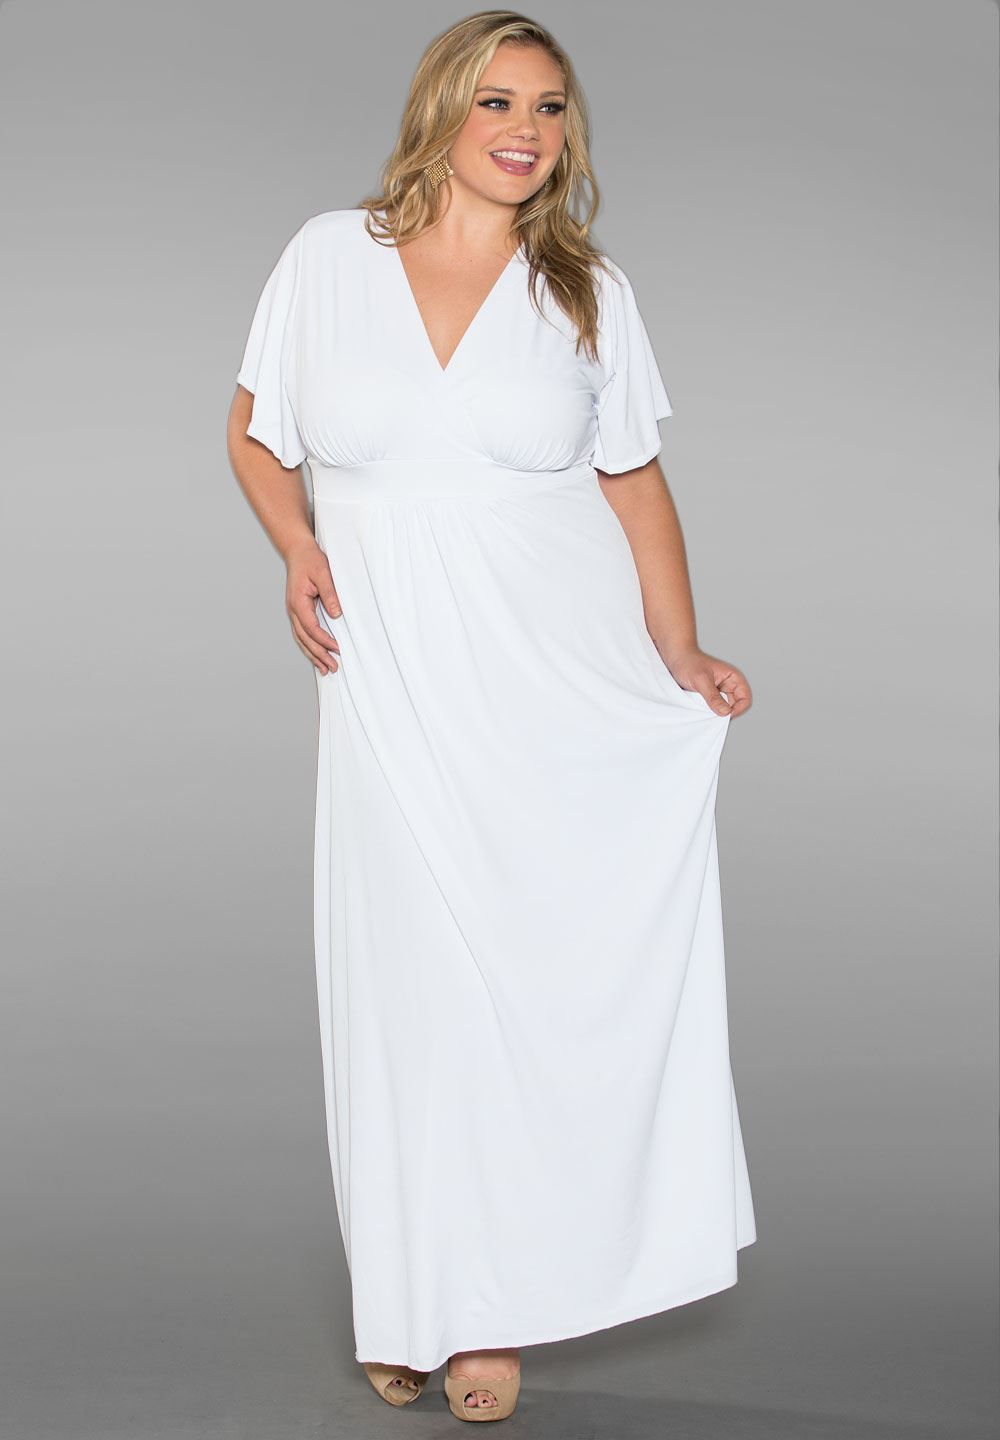 Swak Classic Maxi Dress In White 6x 3436 Was 7490 Now